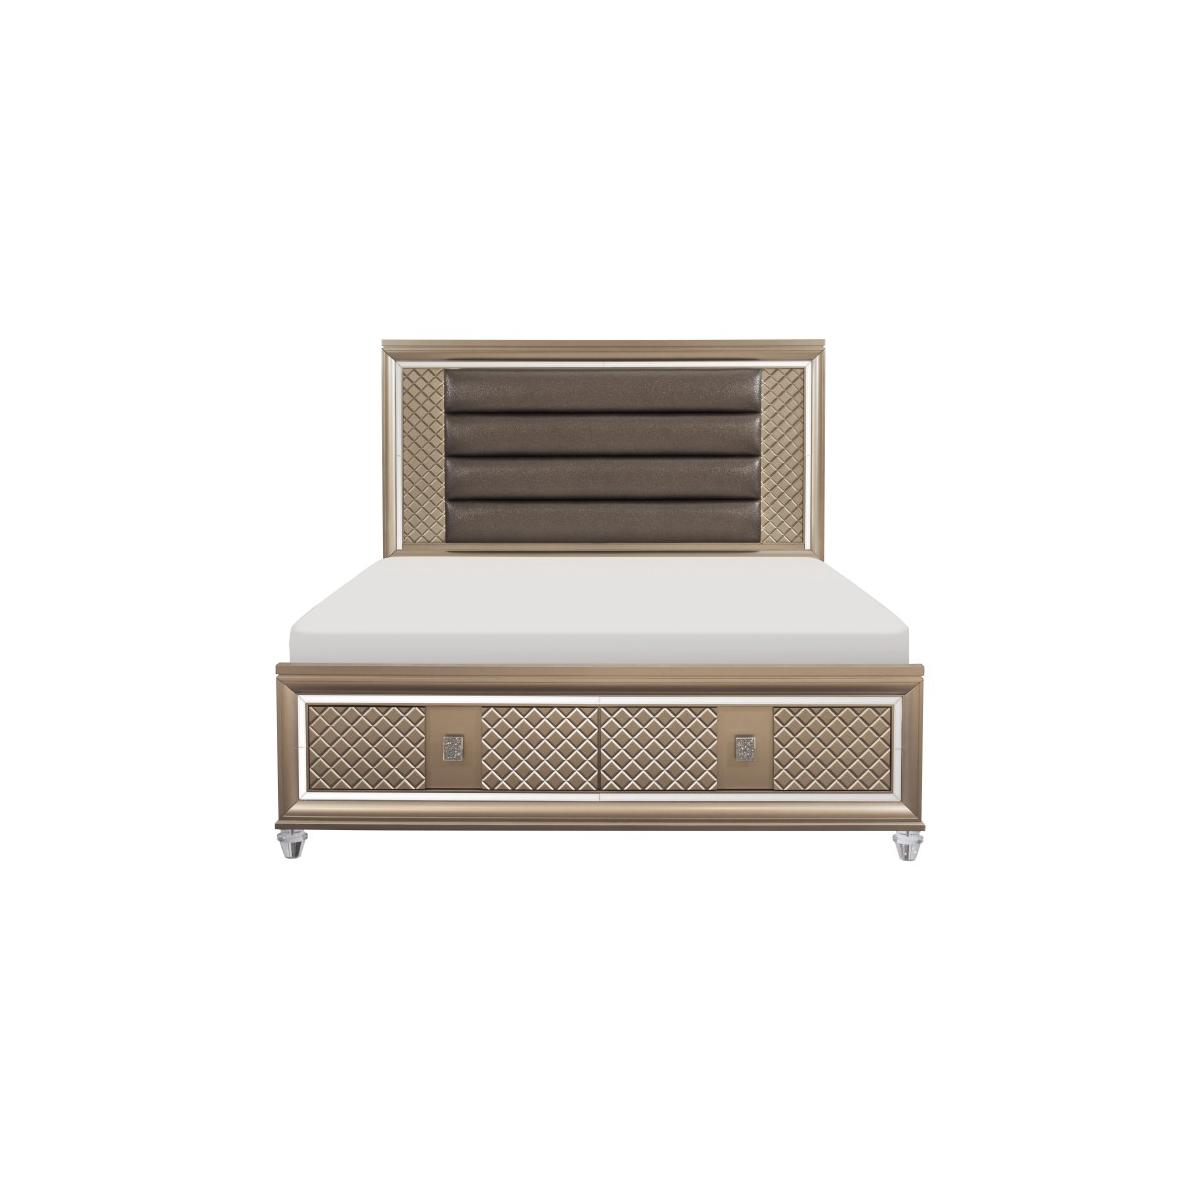 Queen Platform Bed with LED Lighting and Storage Footboard